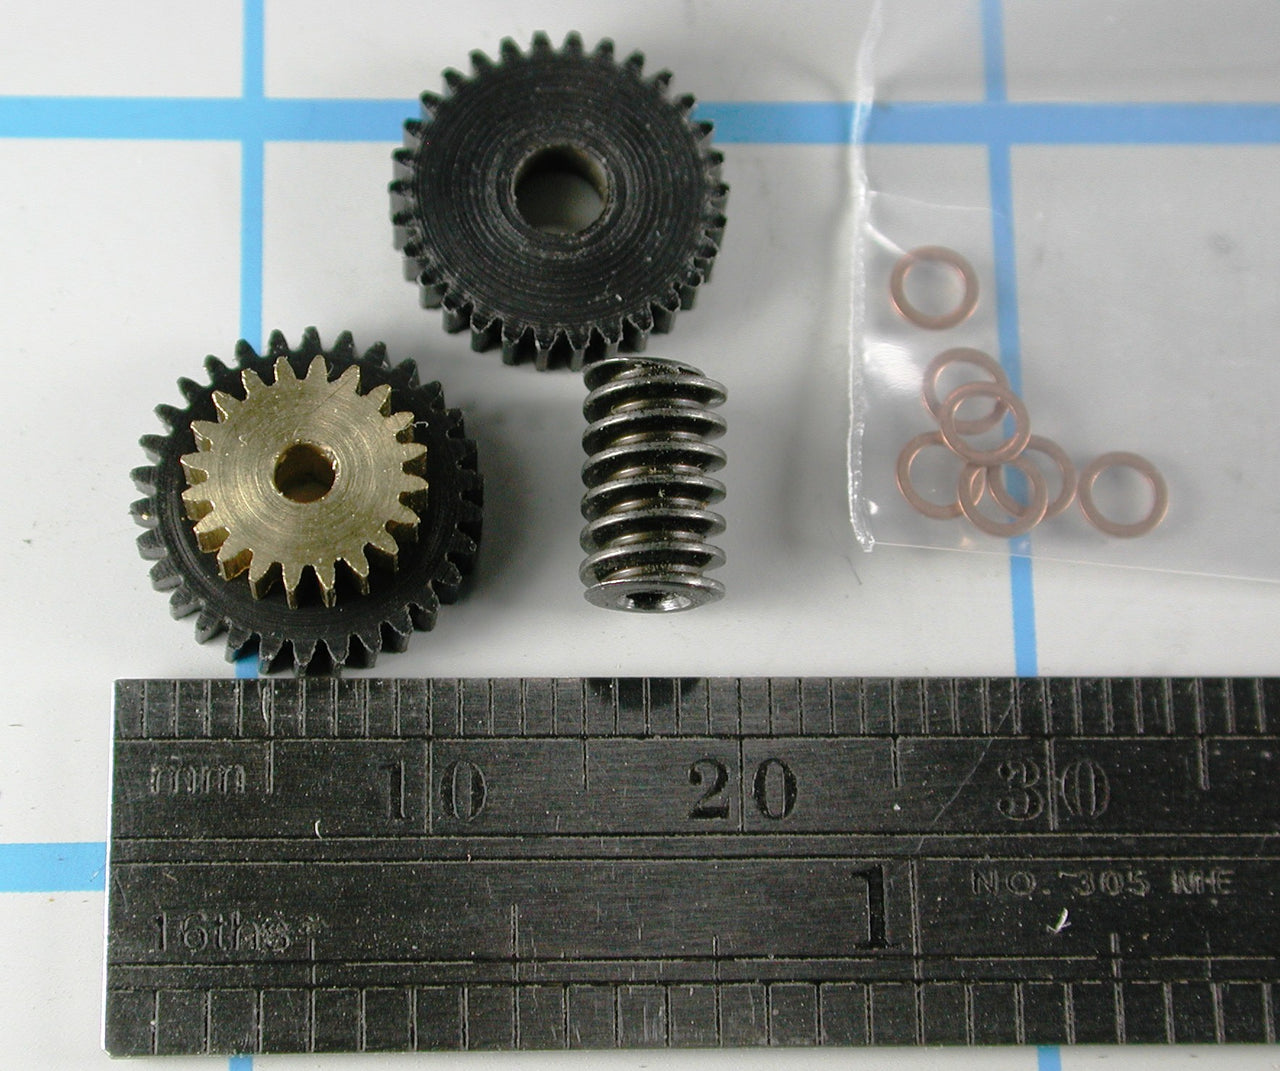 Regear Set 2.0mm Shaft motor MDC Compound Gear KIT 45-1